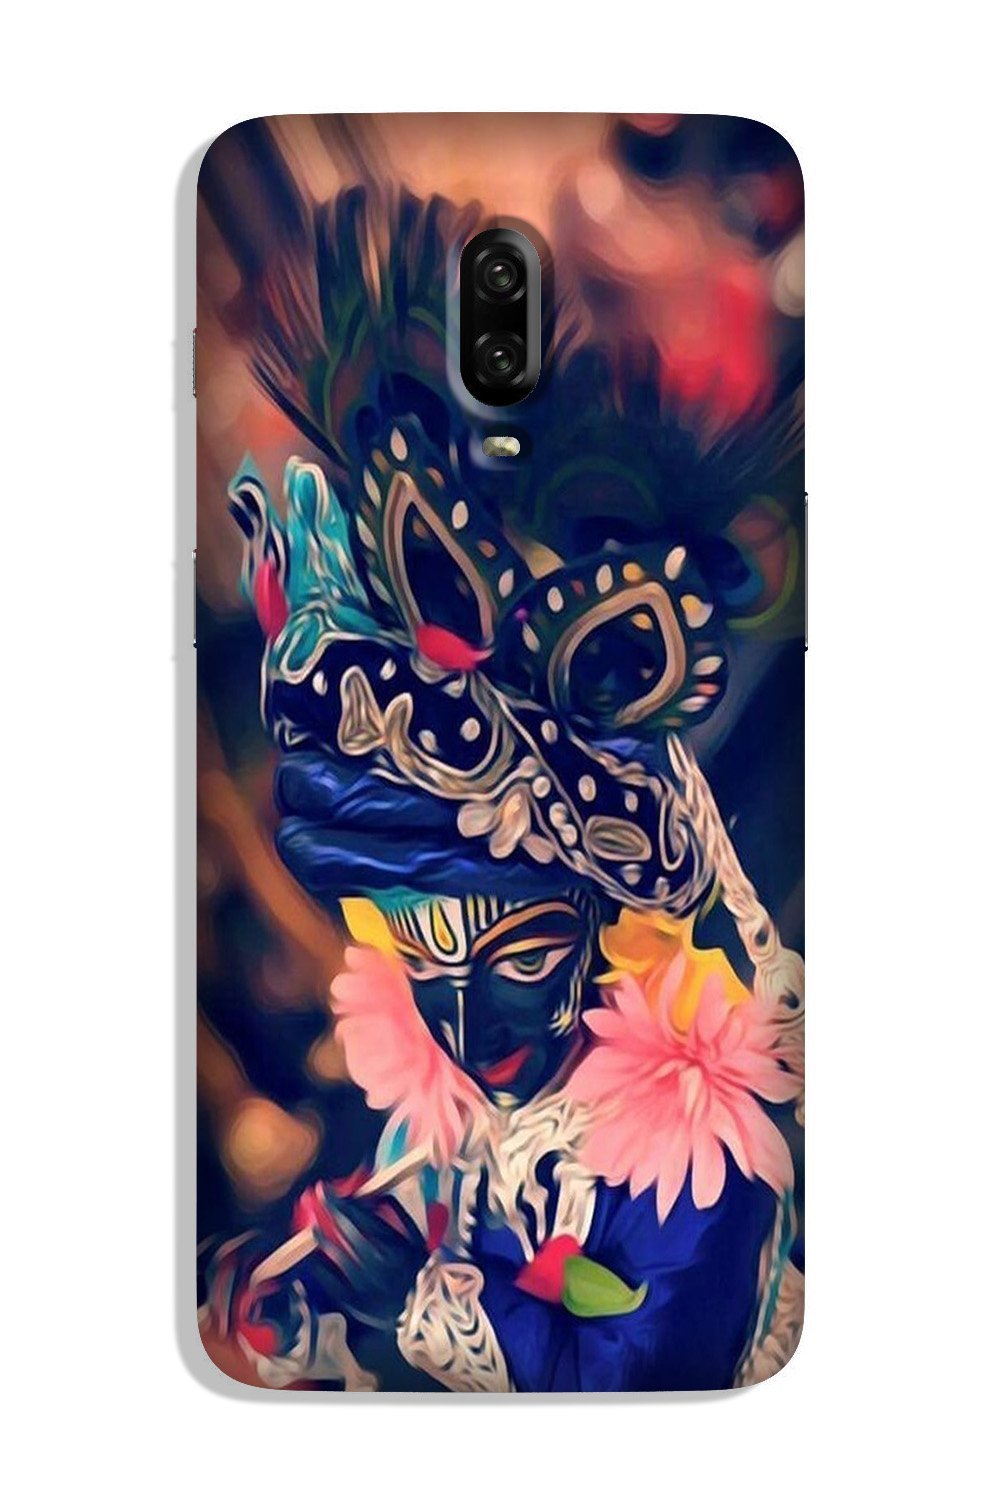 Lord Krishna Case for OnePlus 7